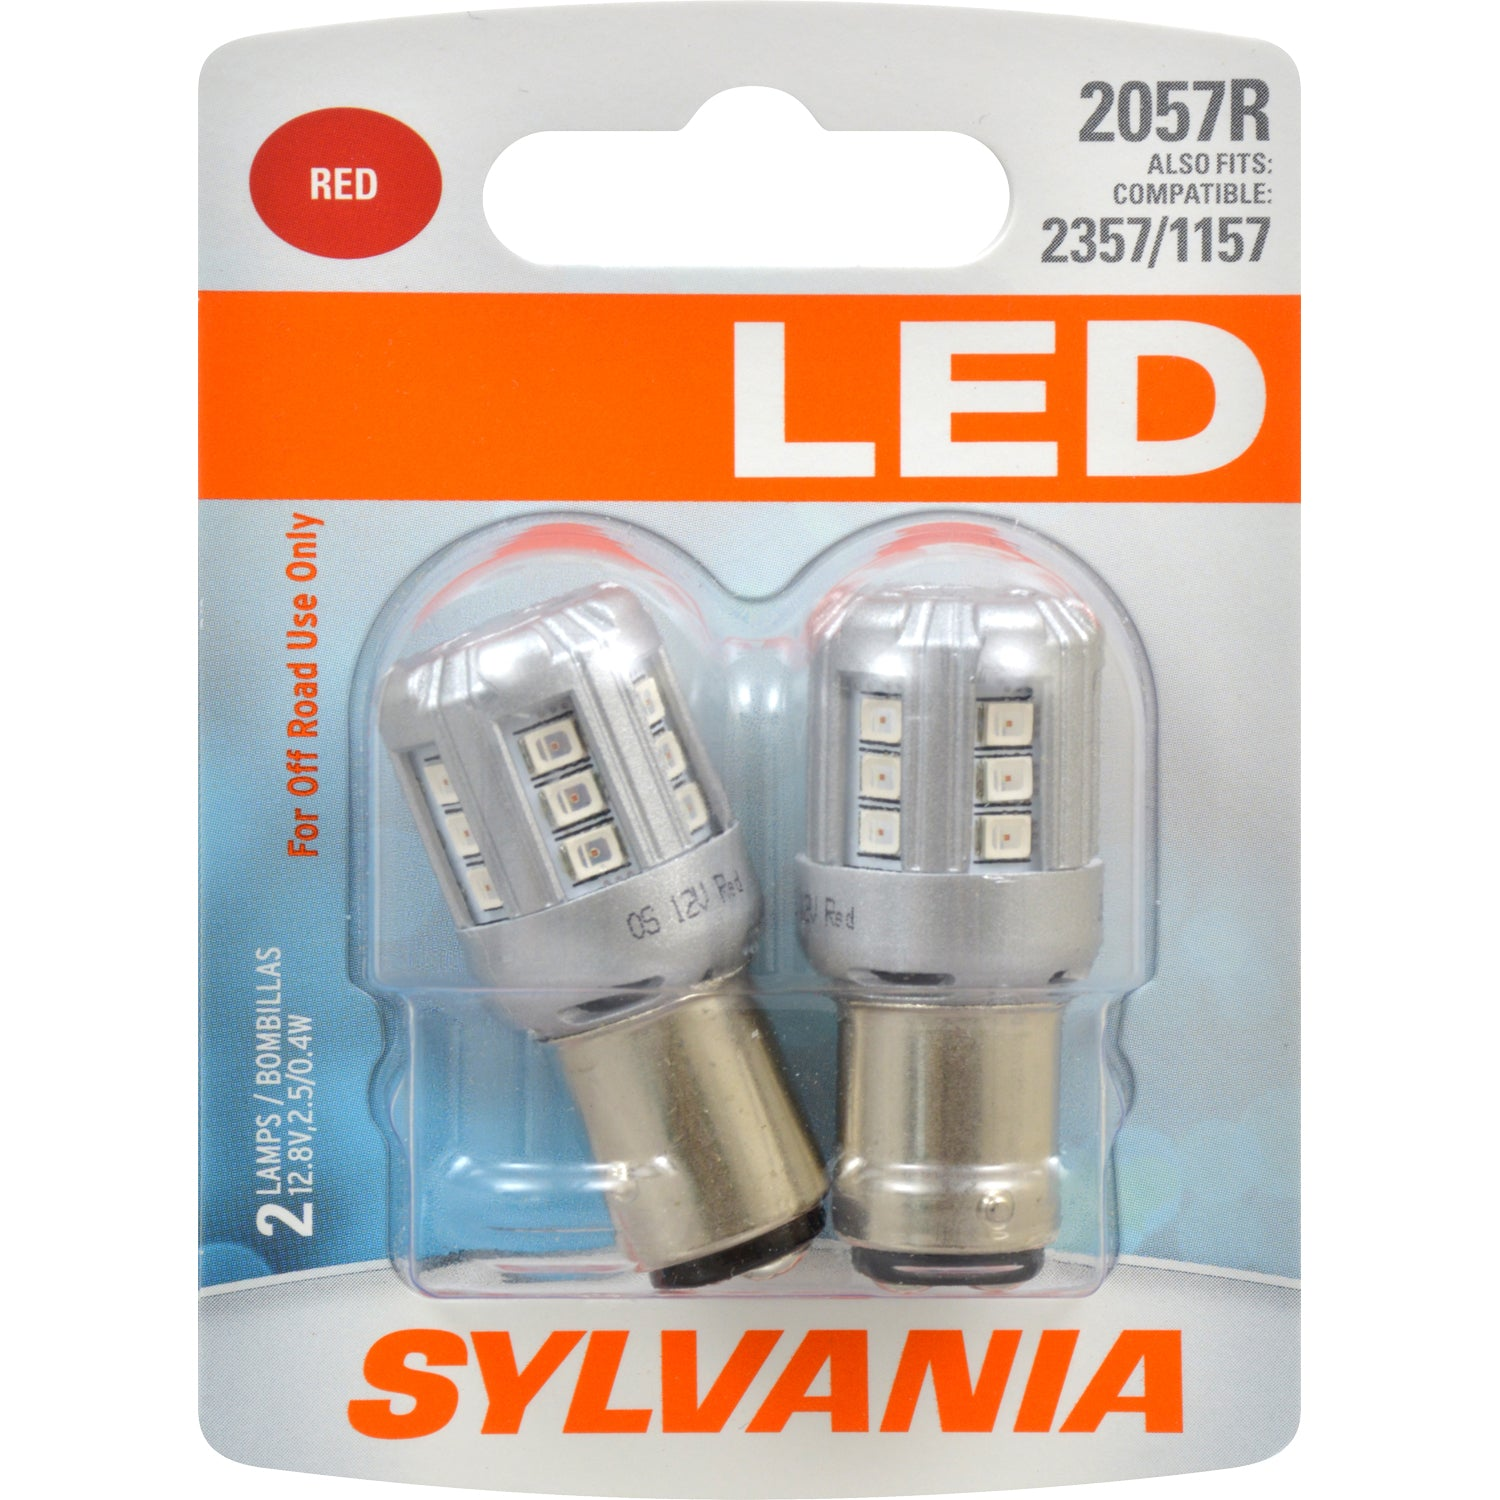 2-PK SYLVANIA 2057 Red LED Automotive Bulb